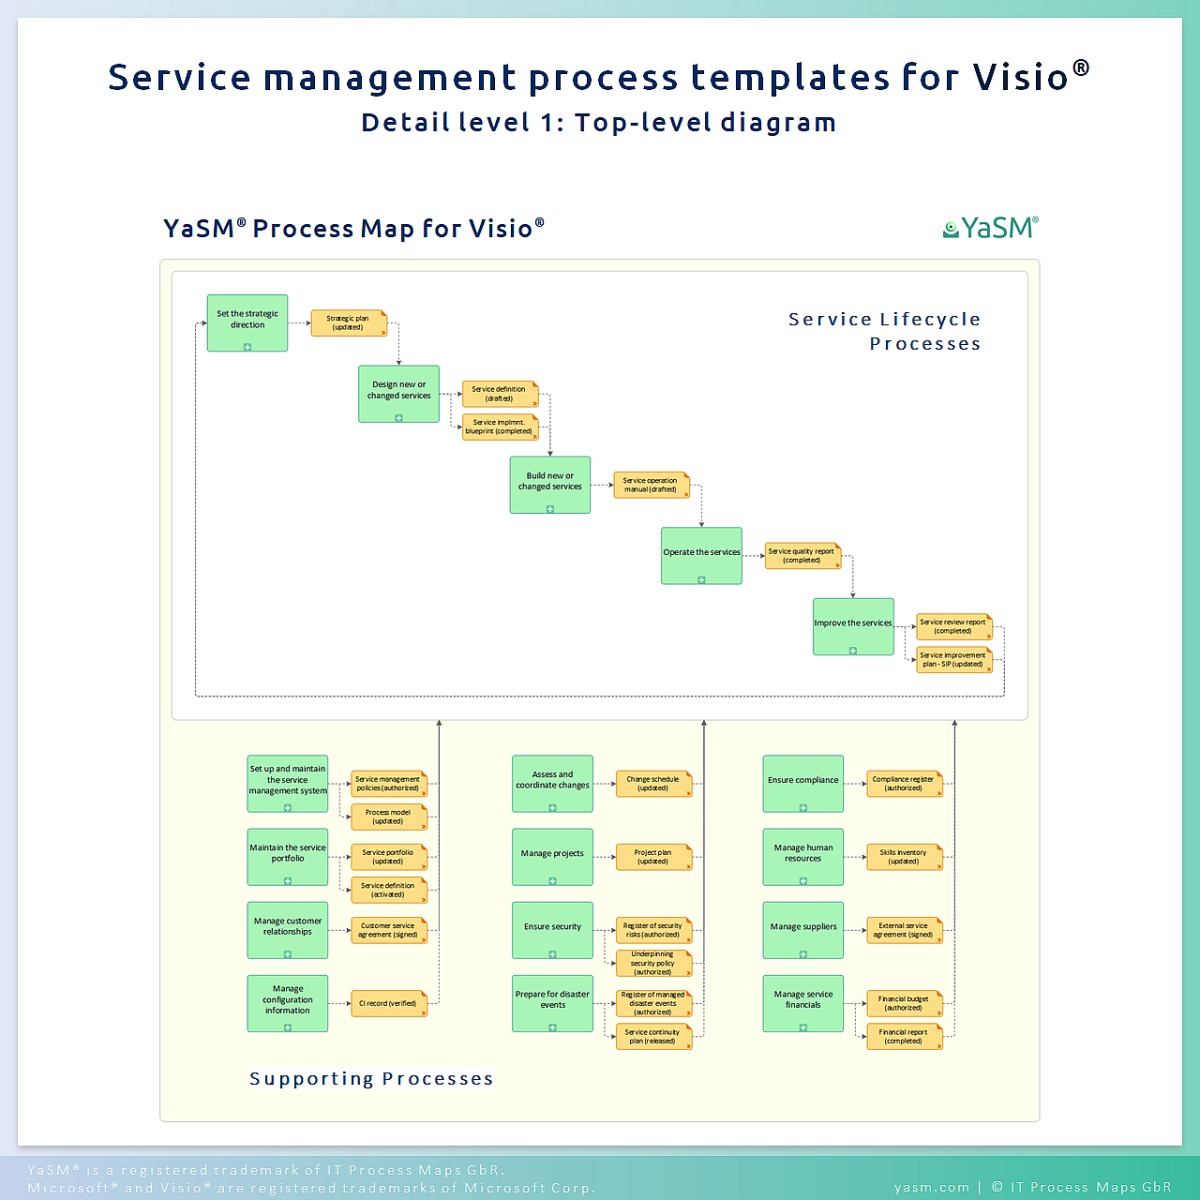 The YaSM Process Map for Microsoft Visio: Diagrams and templates for service management, Enterprise Service Management and ITSM projects.